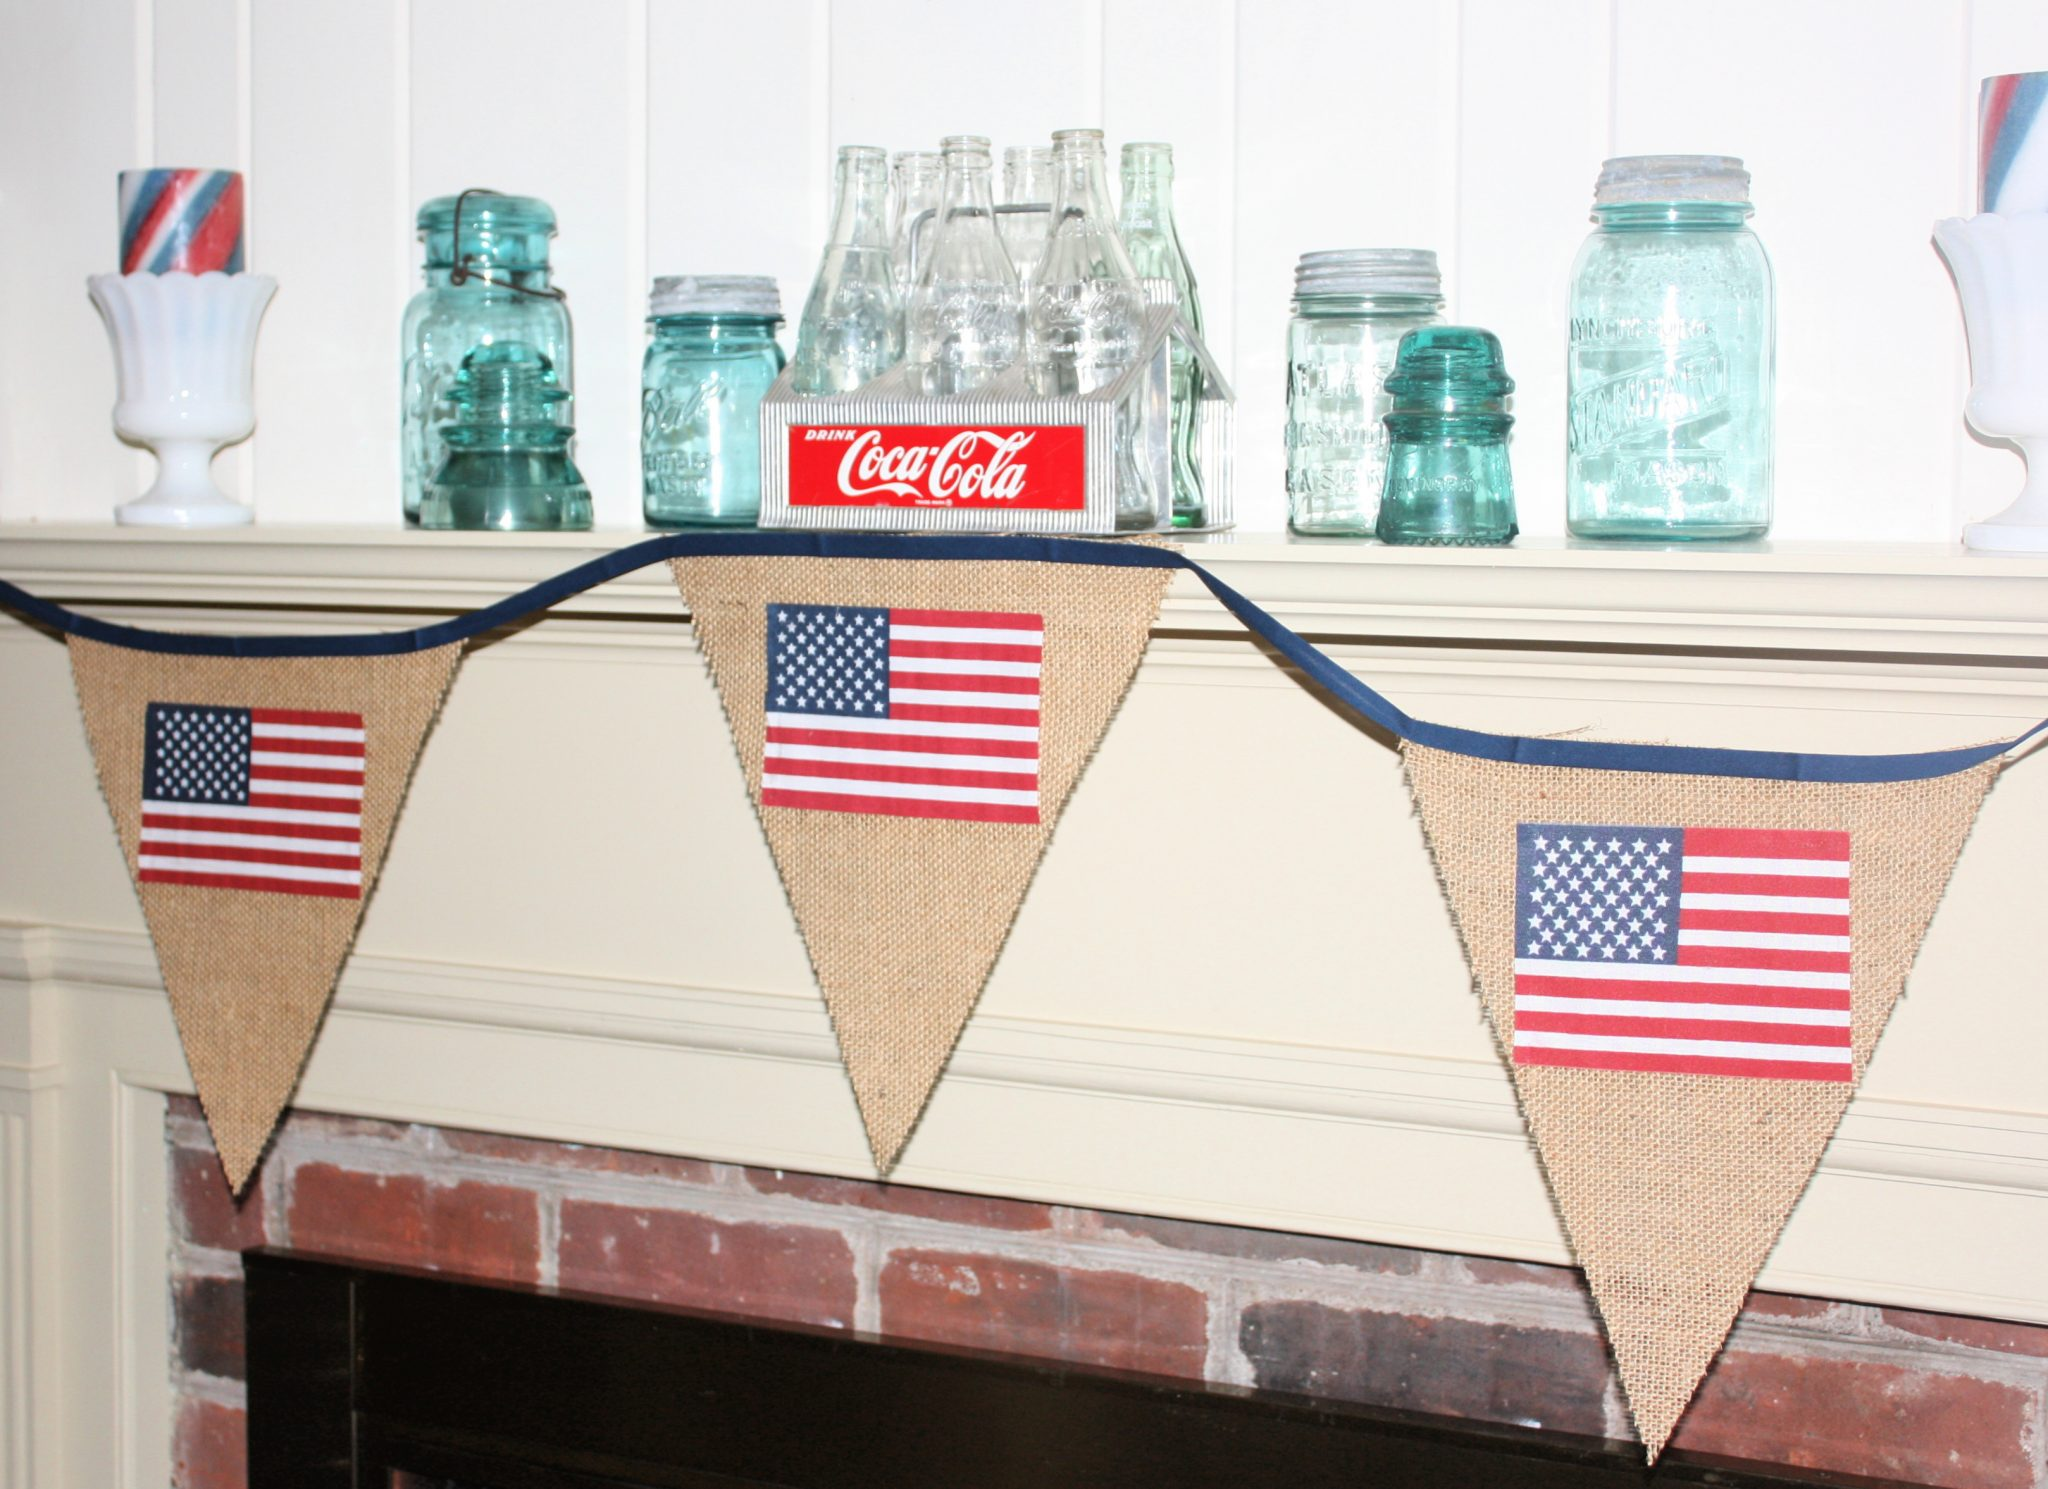 Mantel decorated for 4th of July with banner, Coke crate and bottles, vintage Mason jars